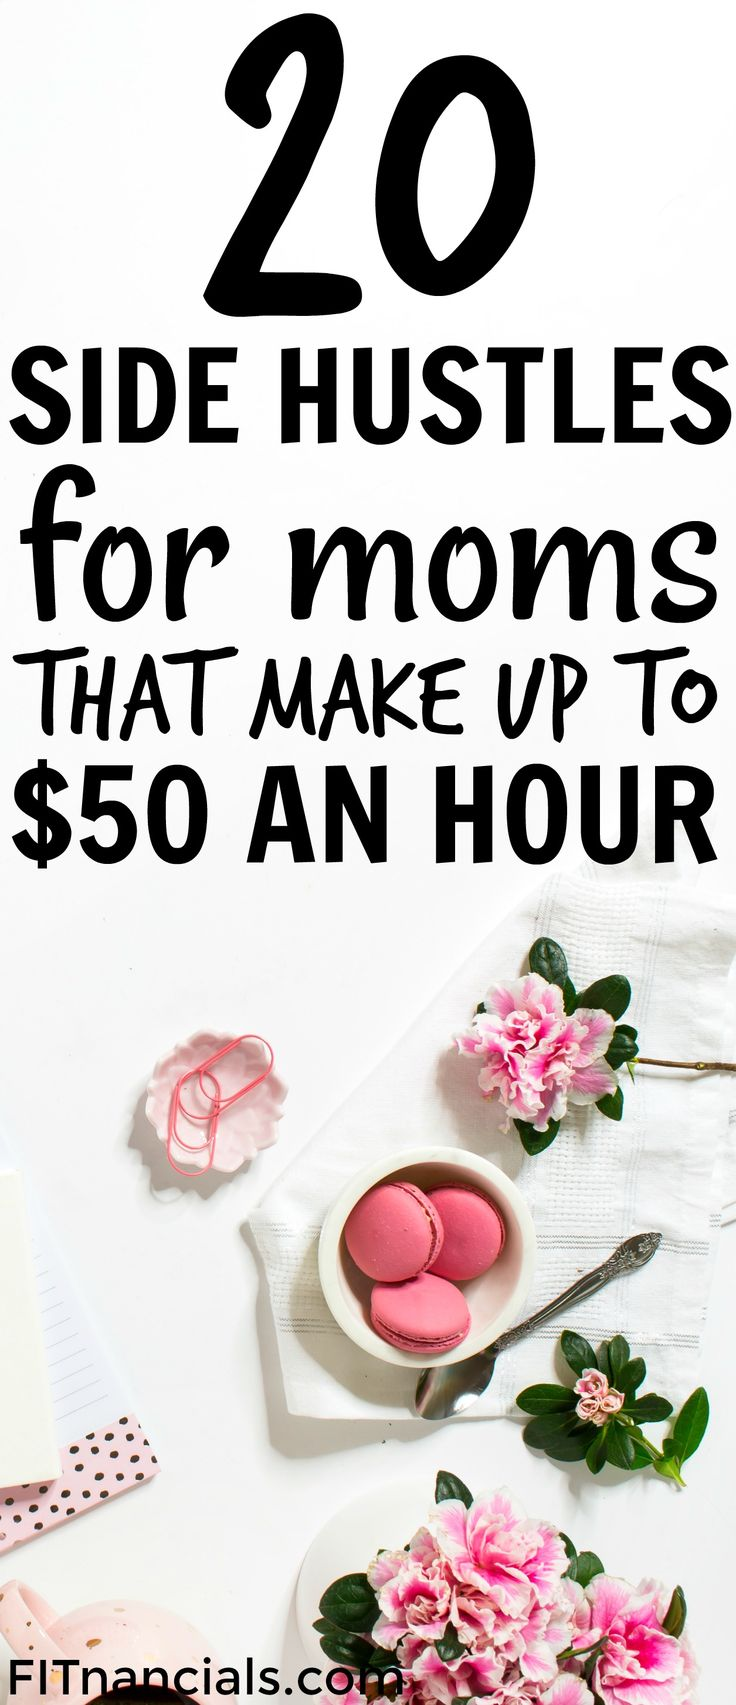 Check out this list of 20 side hustles perfect for stay at home moms. This is an awesome list!